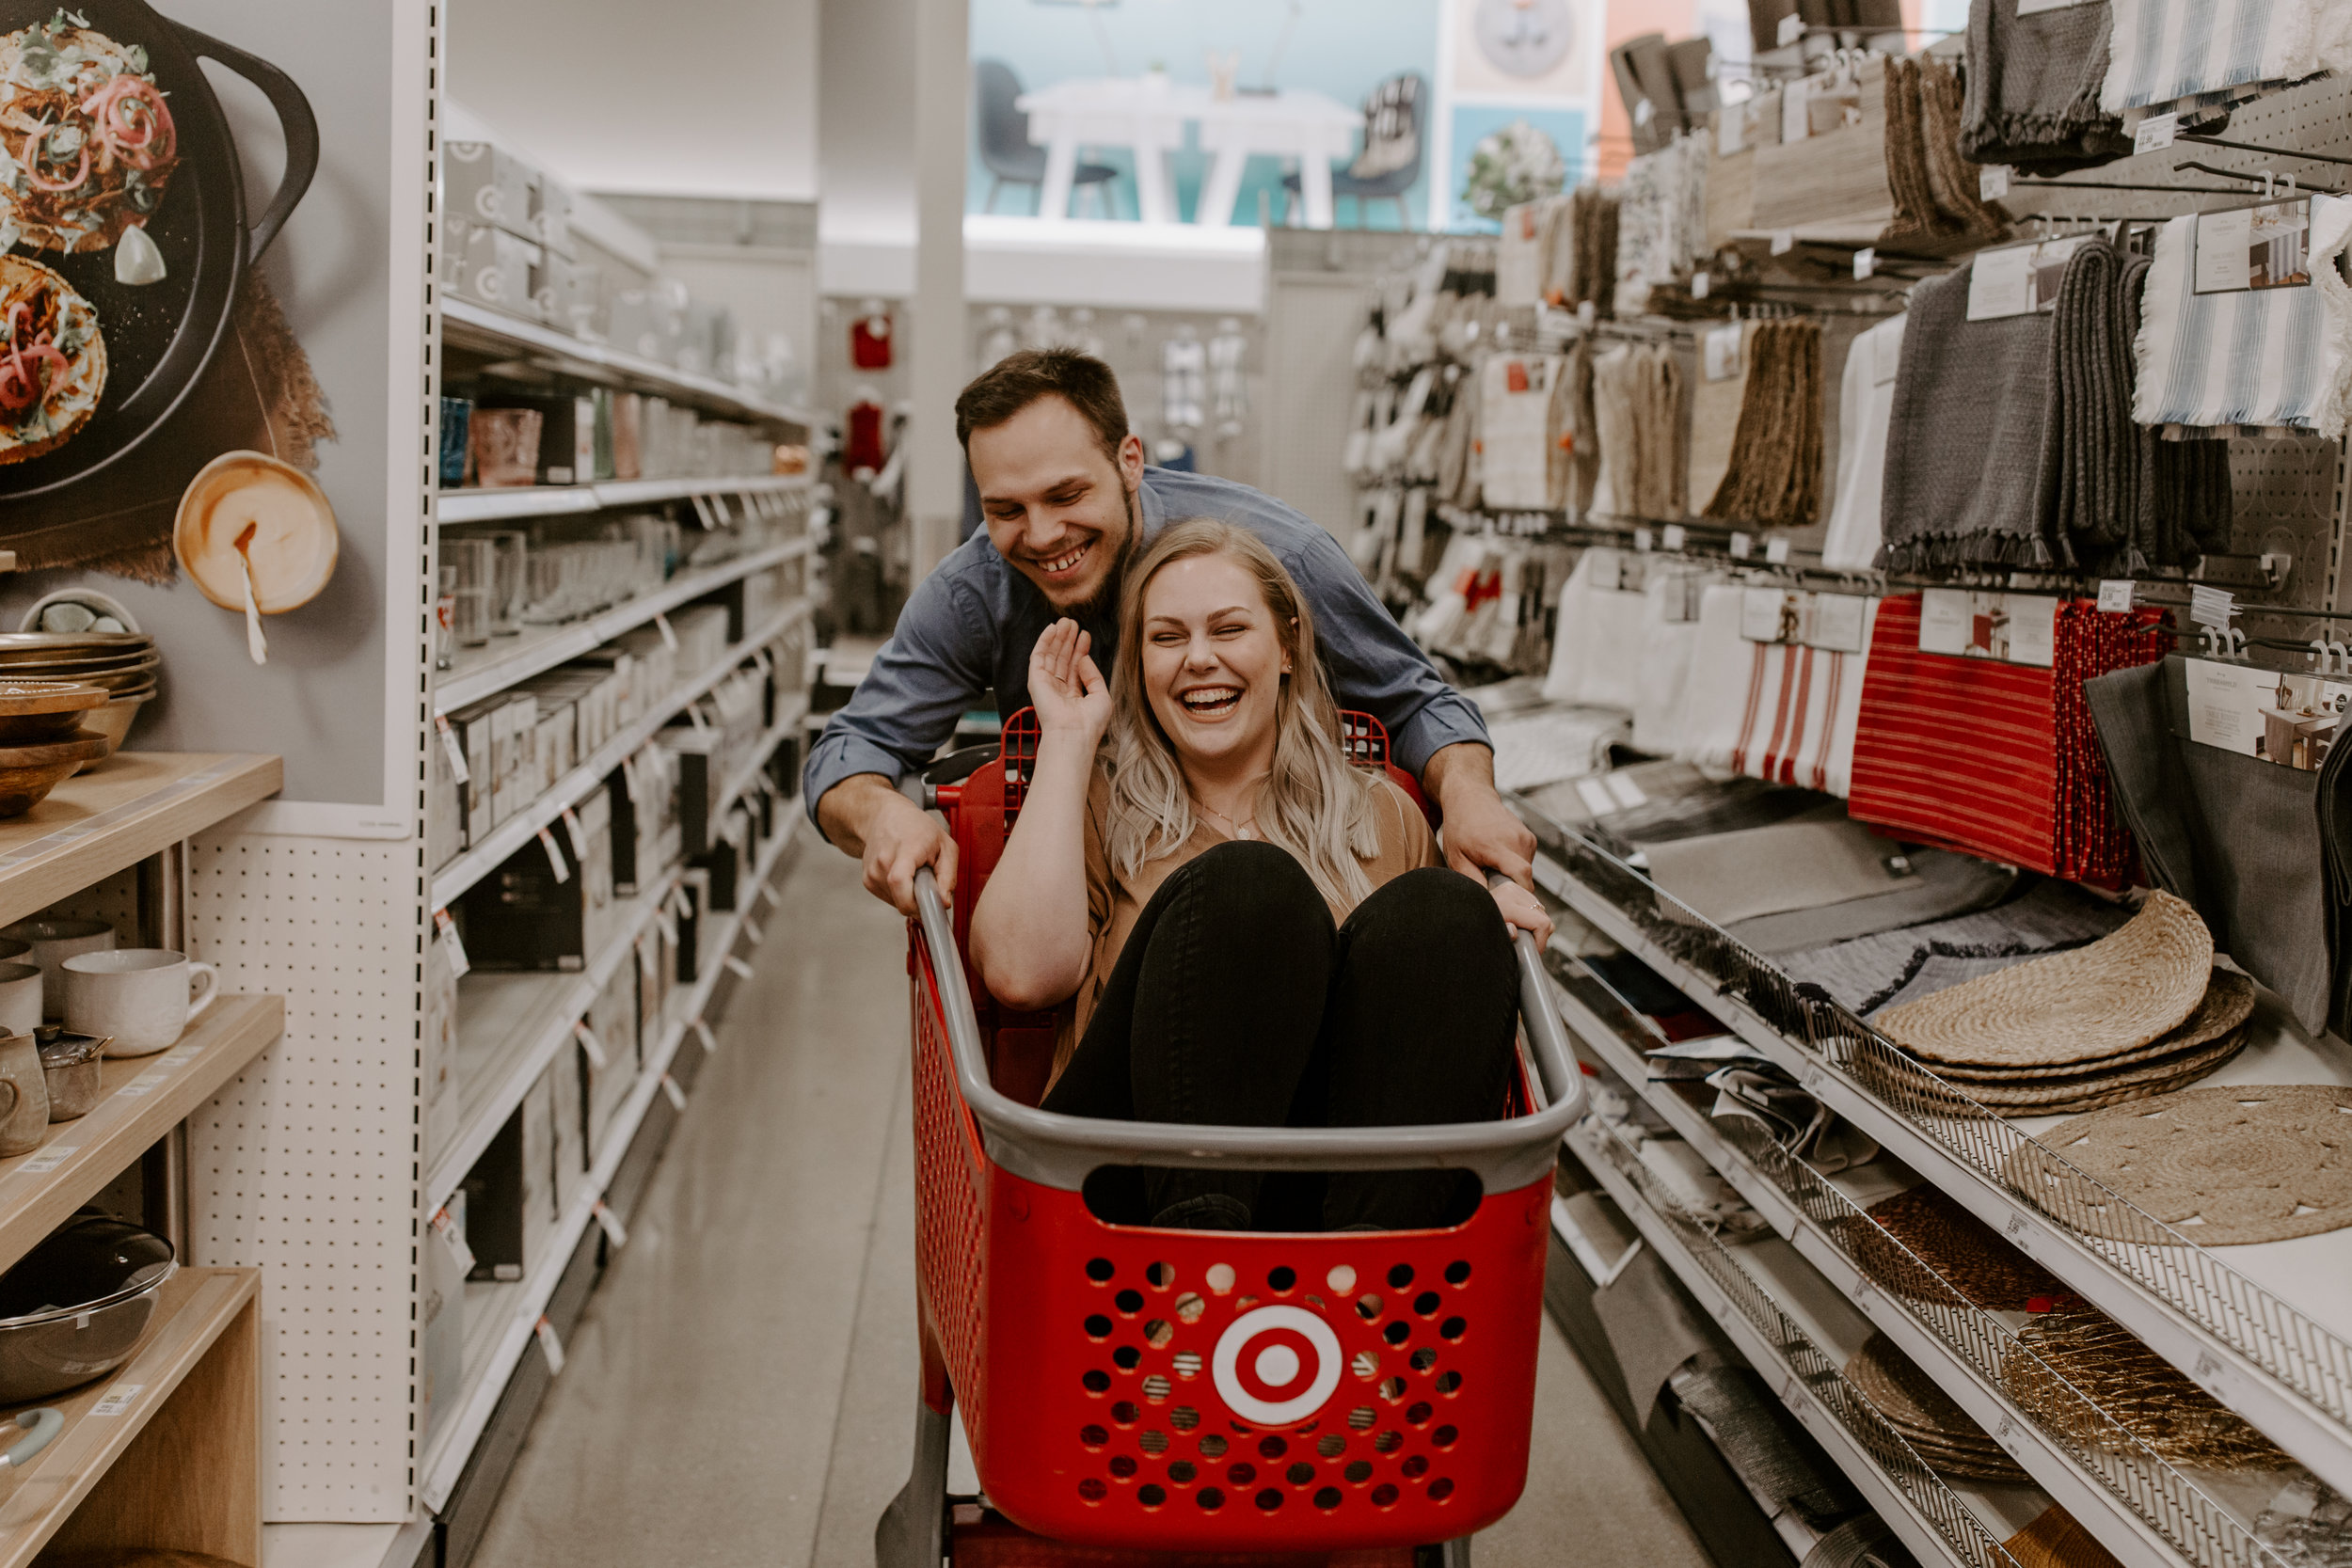 ZAVIOR + VALERIE'S TARGET RUN - JUNE 3, 2019